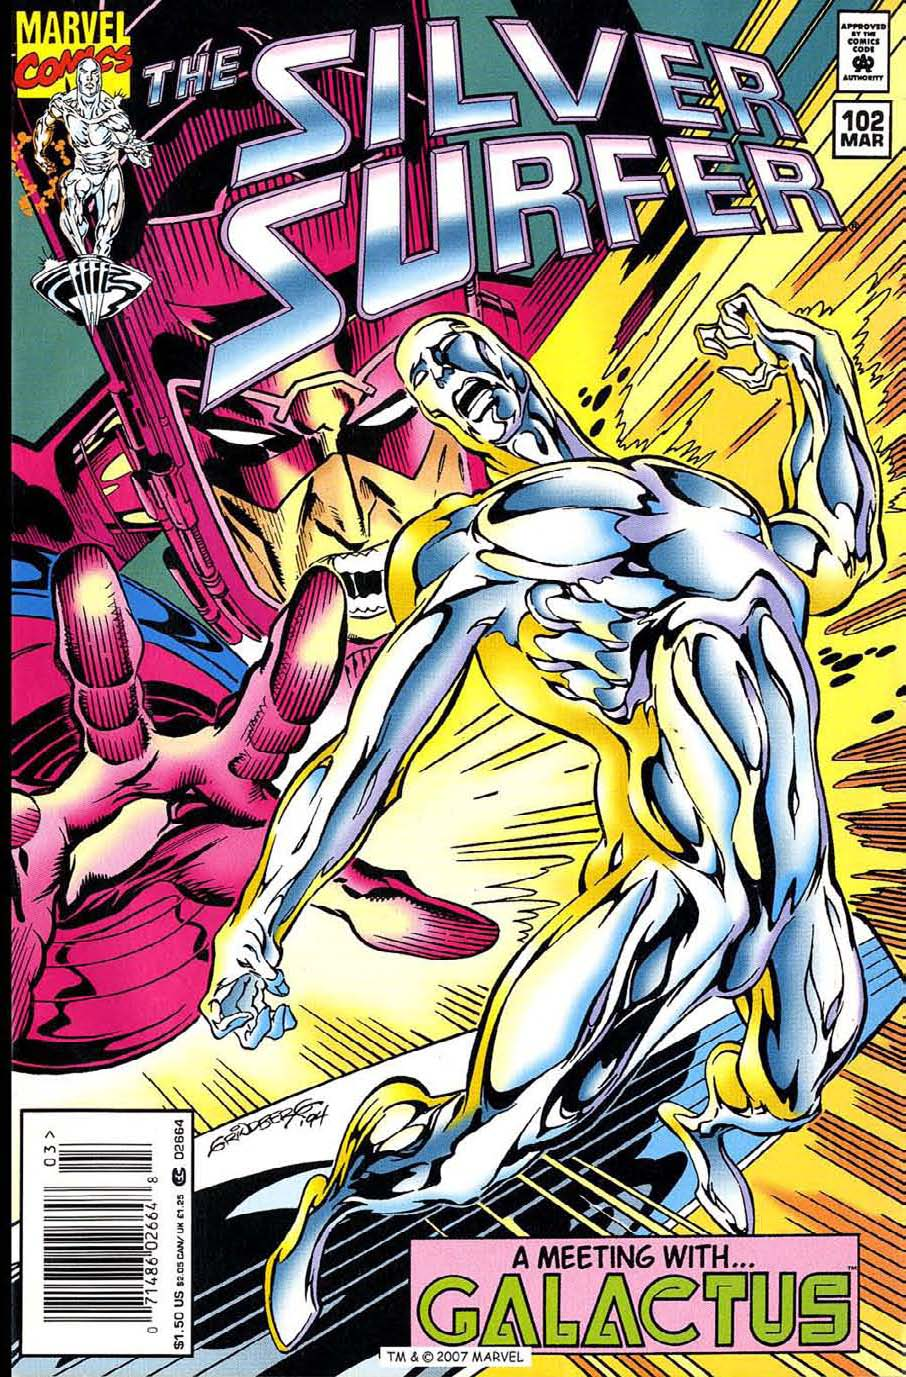 Read online Silver Surfer (1987) comic -  Issue #102 - 1